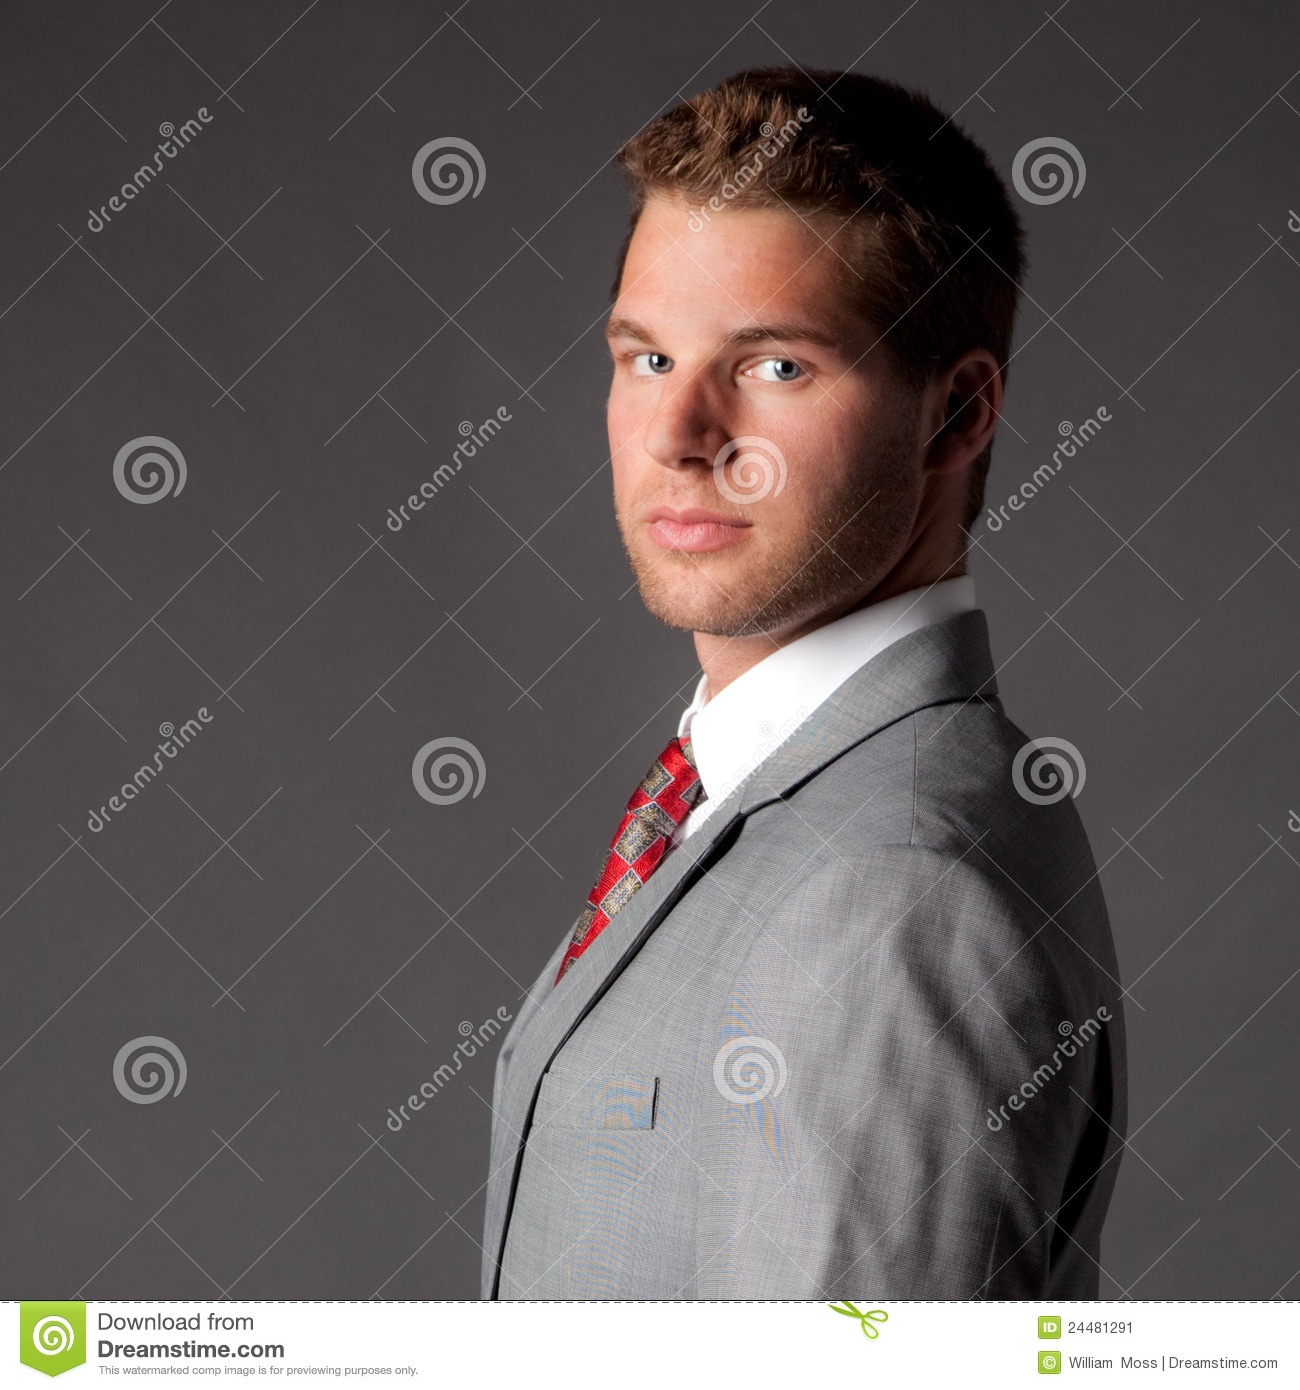 handsome young man in suit and tie stock image image of